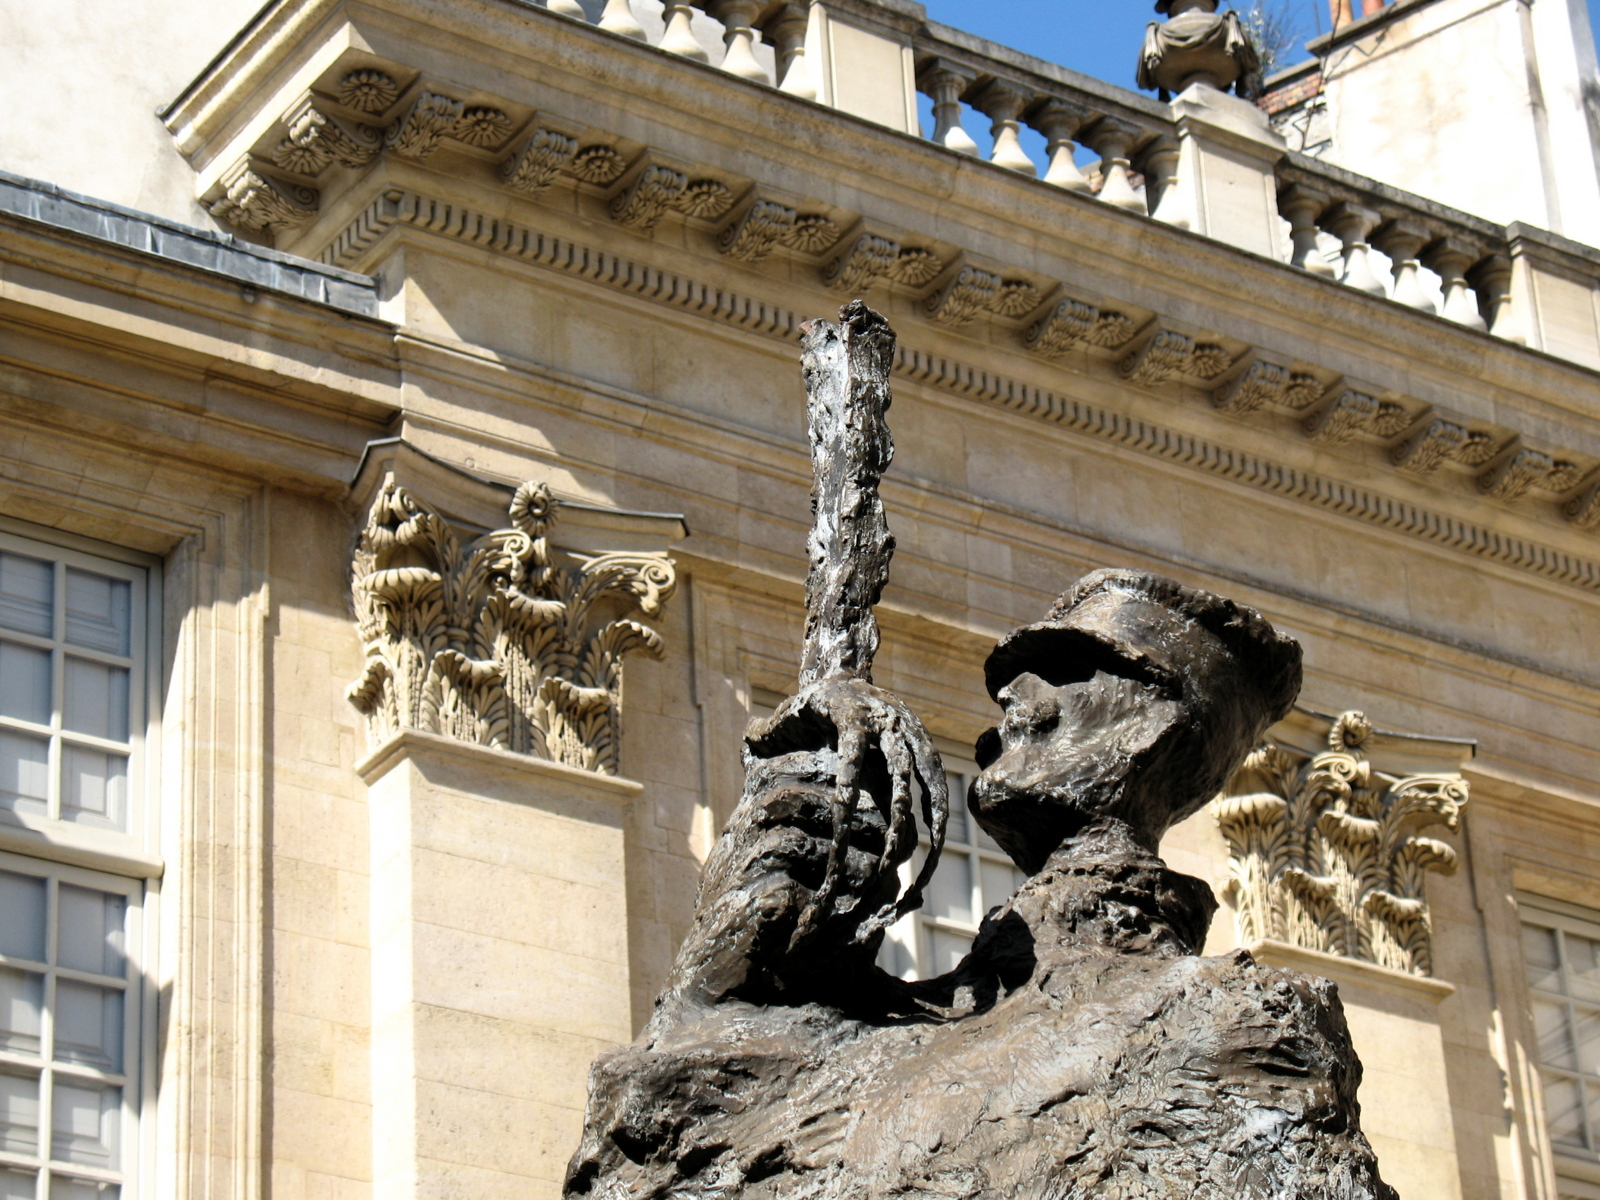 The Alfred Dreyfus Statue in the courtyard of the Jewish Museum in Paris